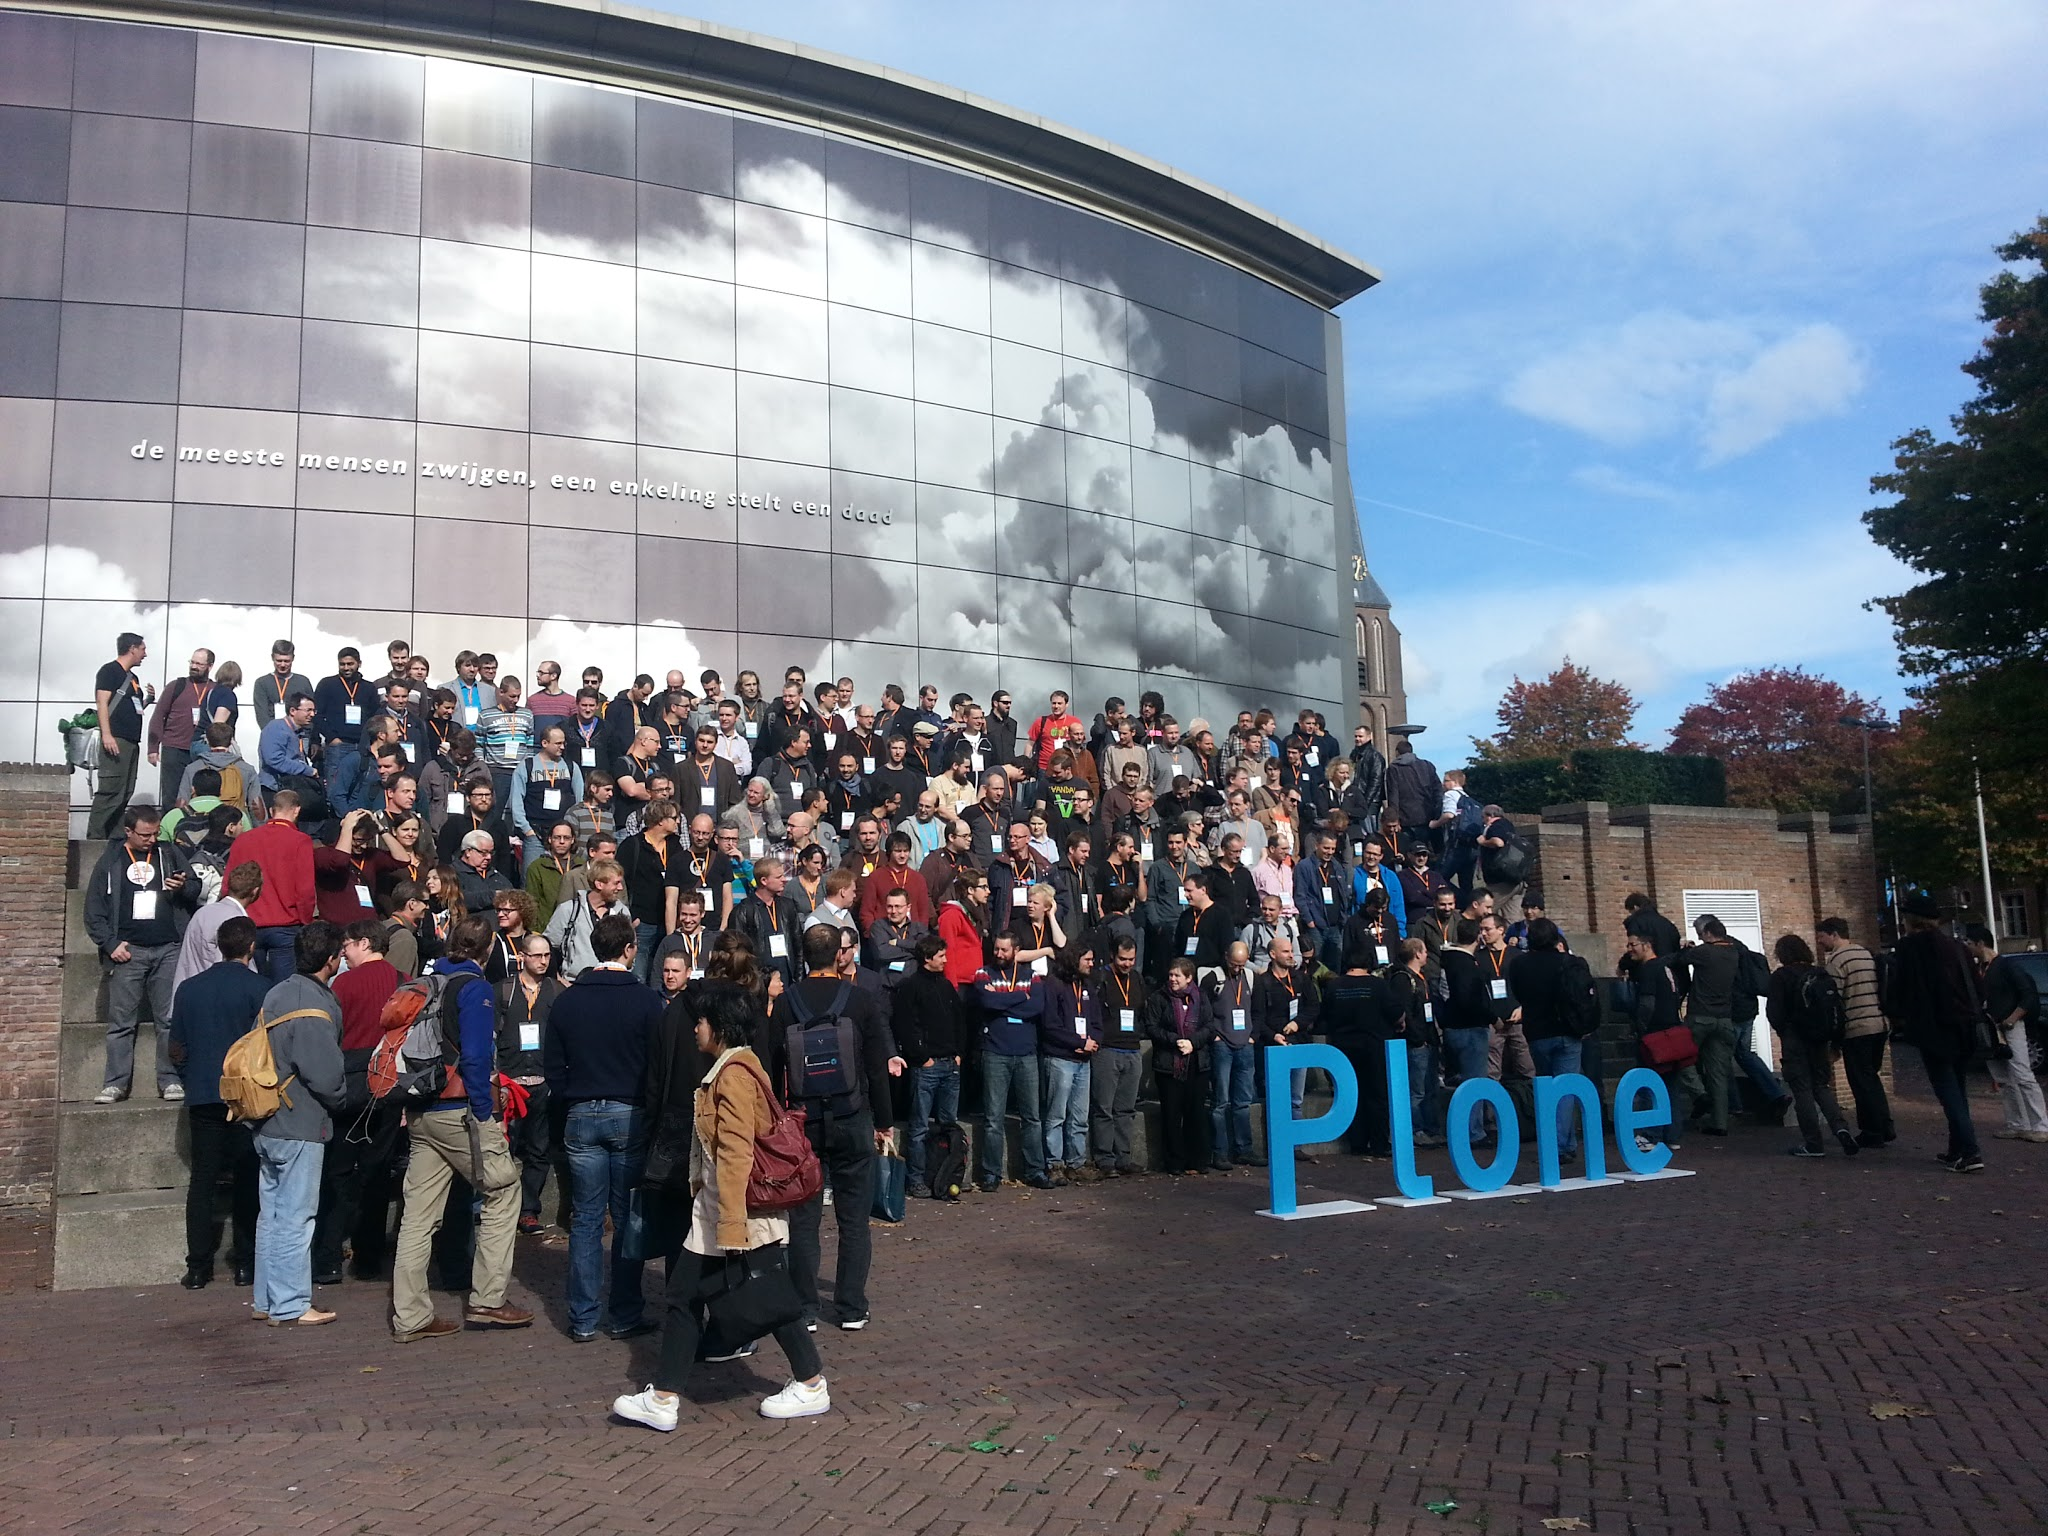 plone-group